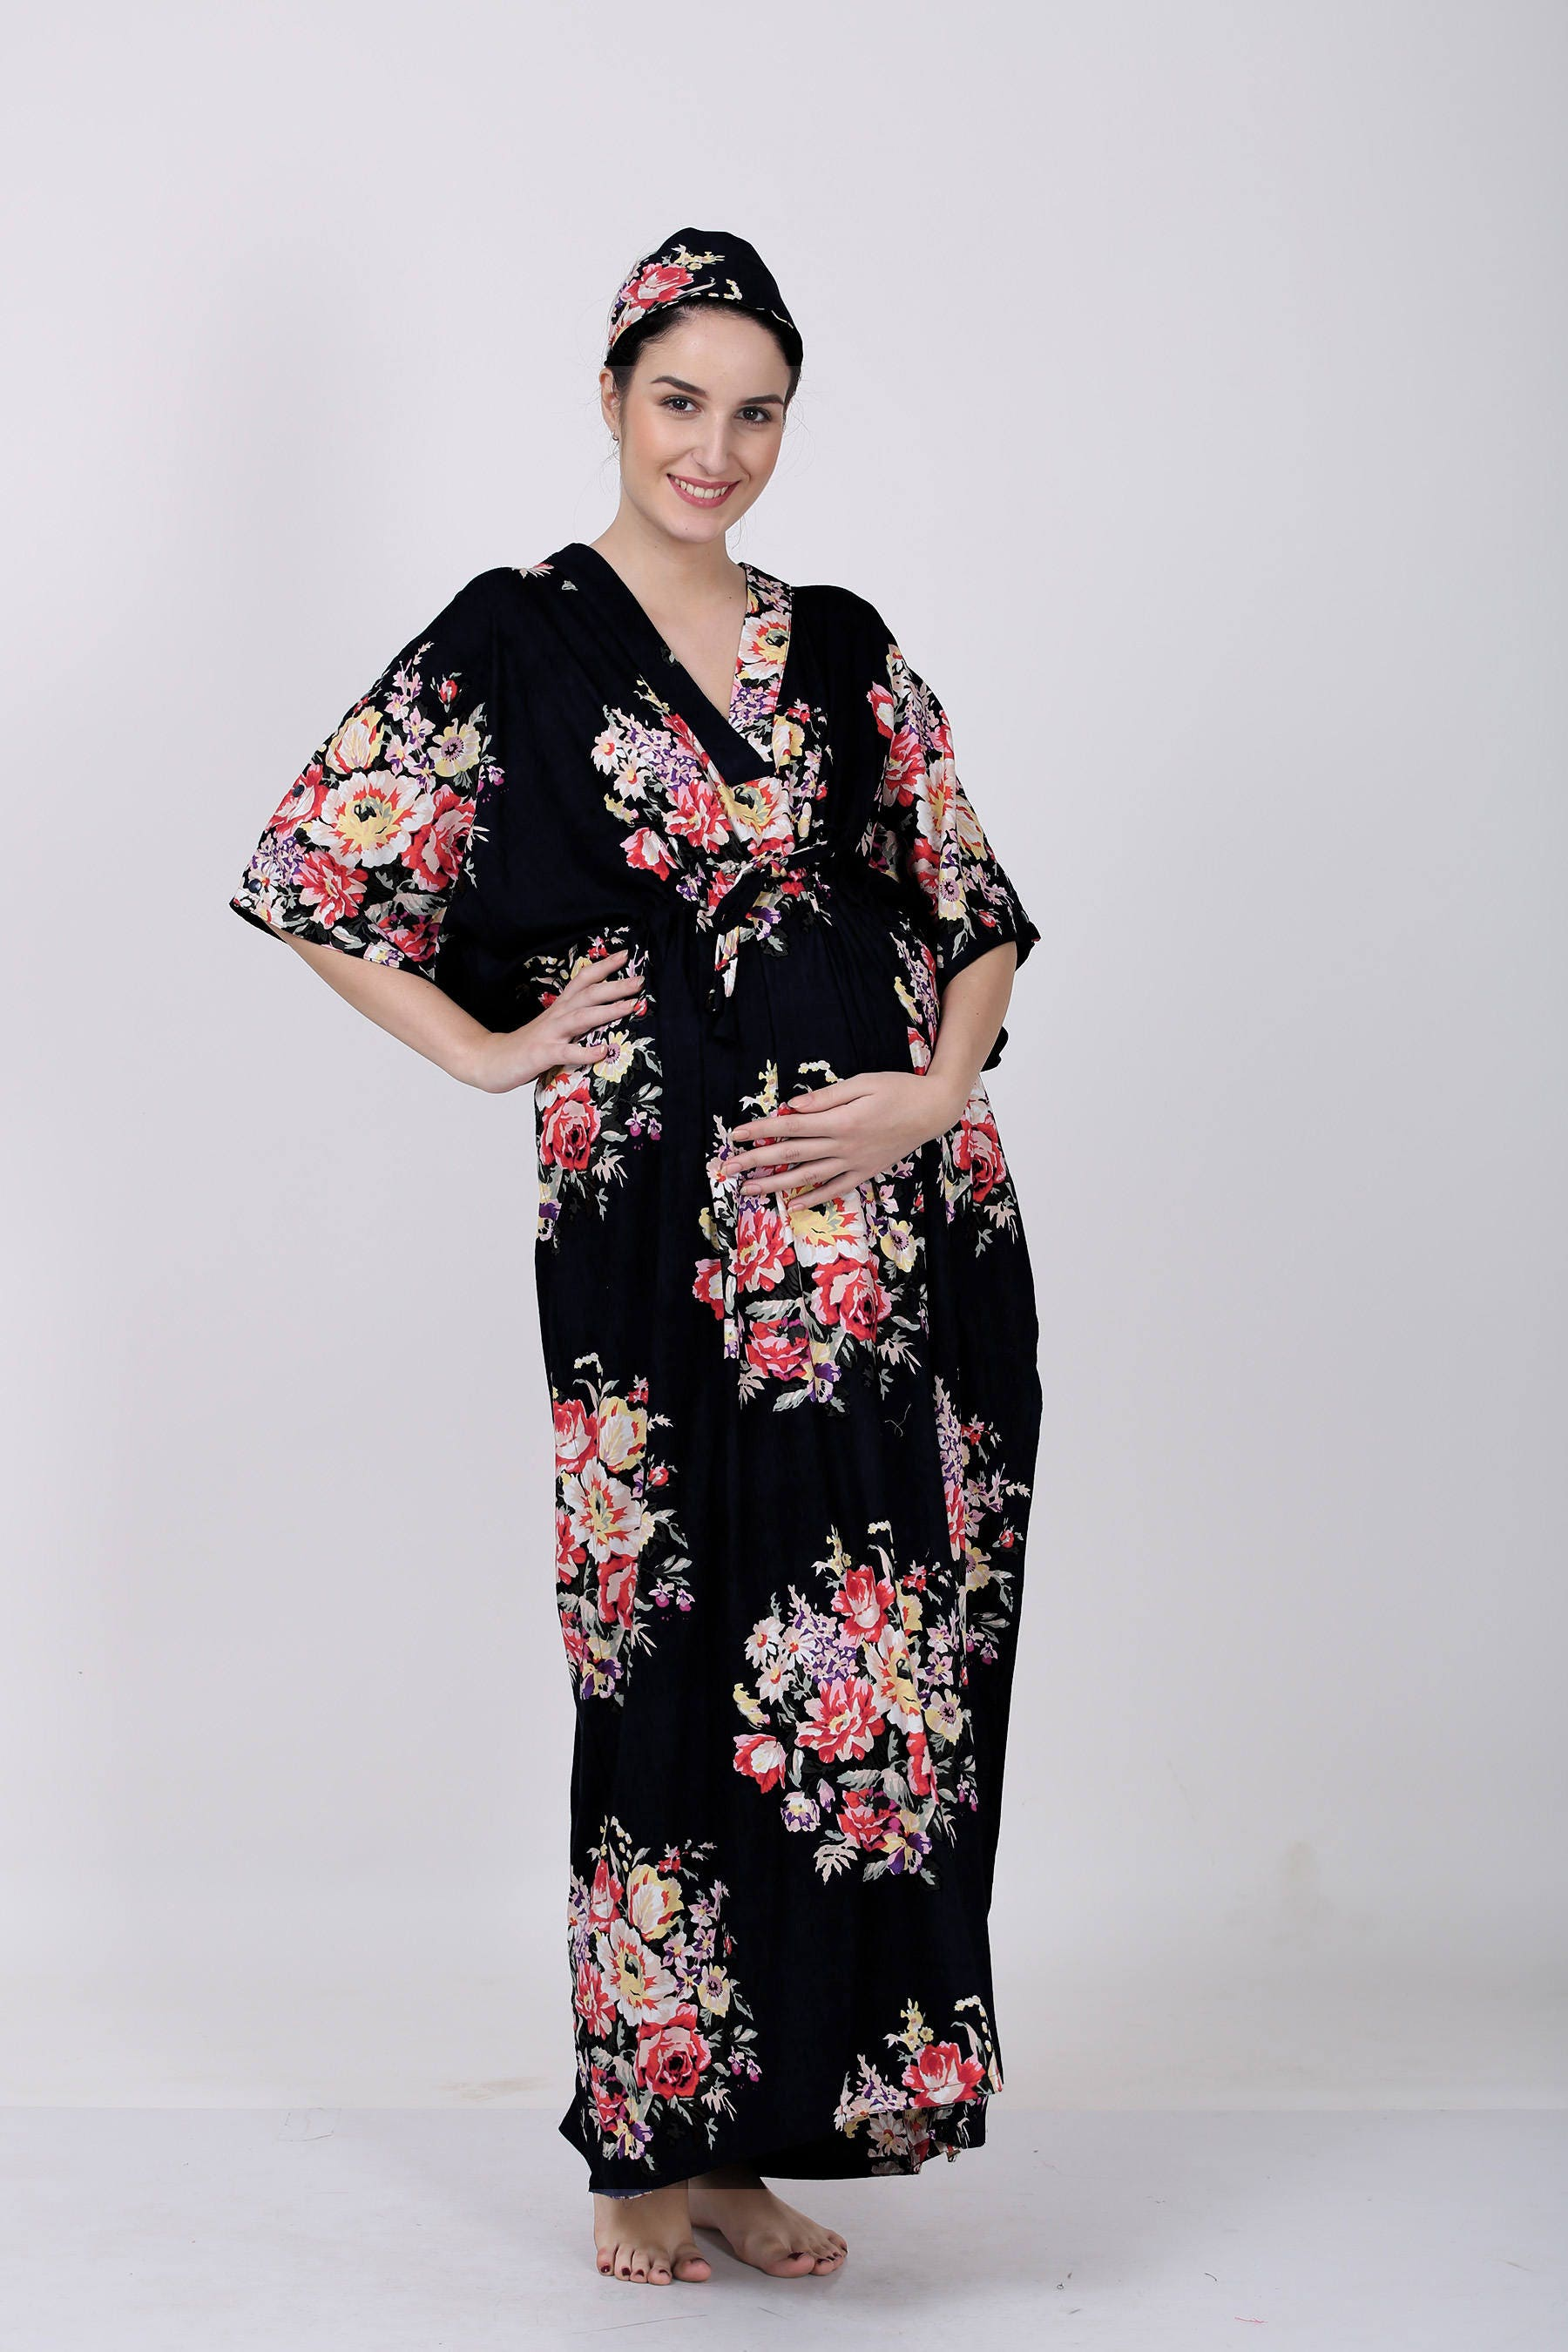 Colorful Etsy Maternity Hospital Gown Gift - Wedding and flowers ...